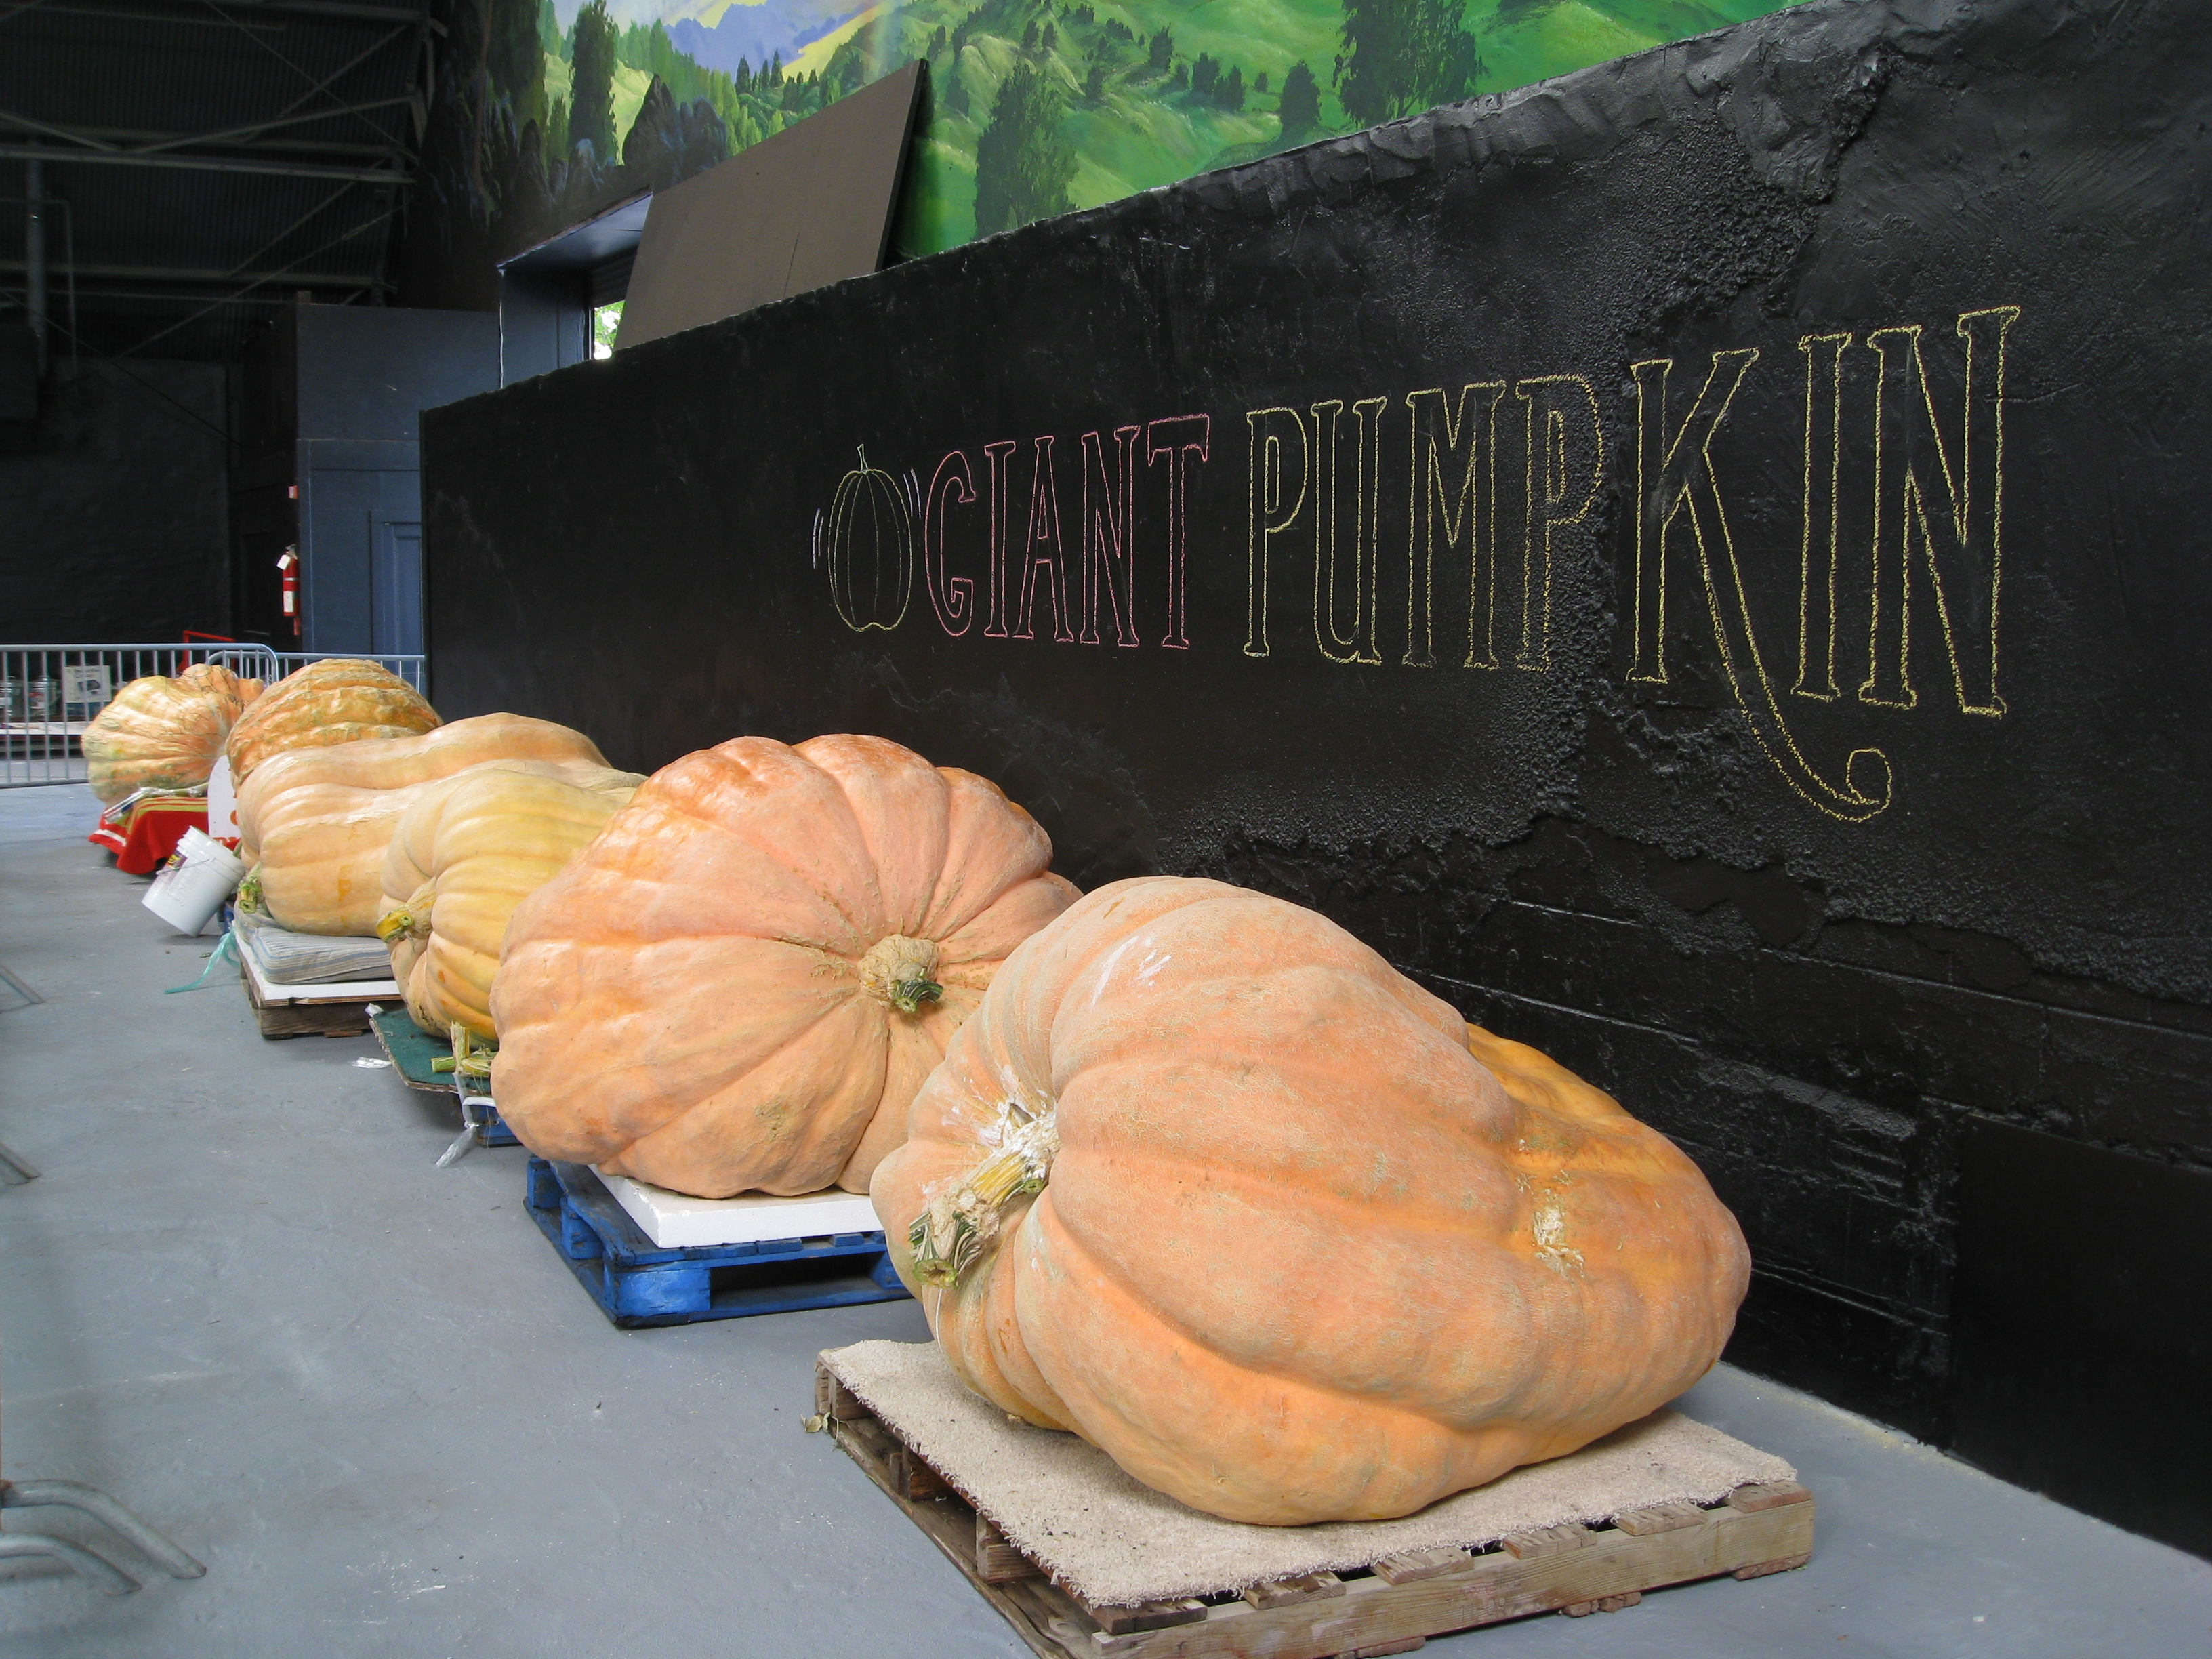 And what would a fair be without a Giant Pumpkin Contest?